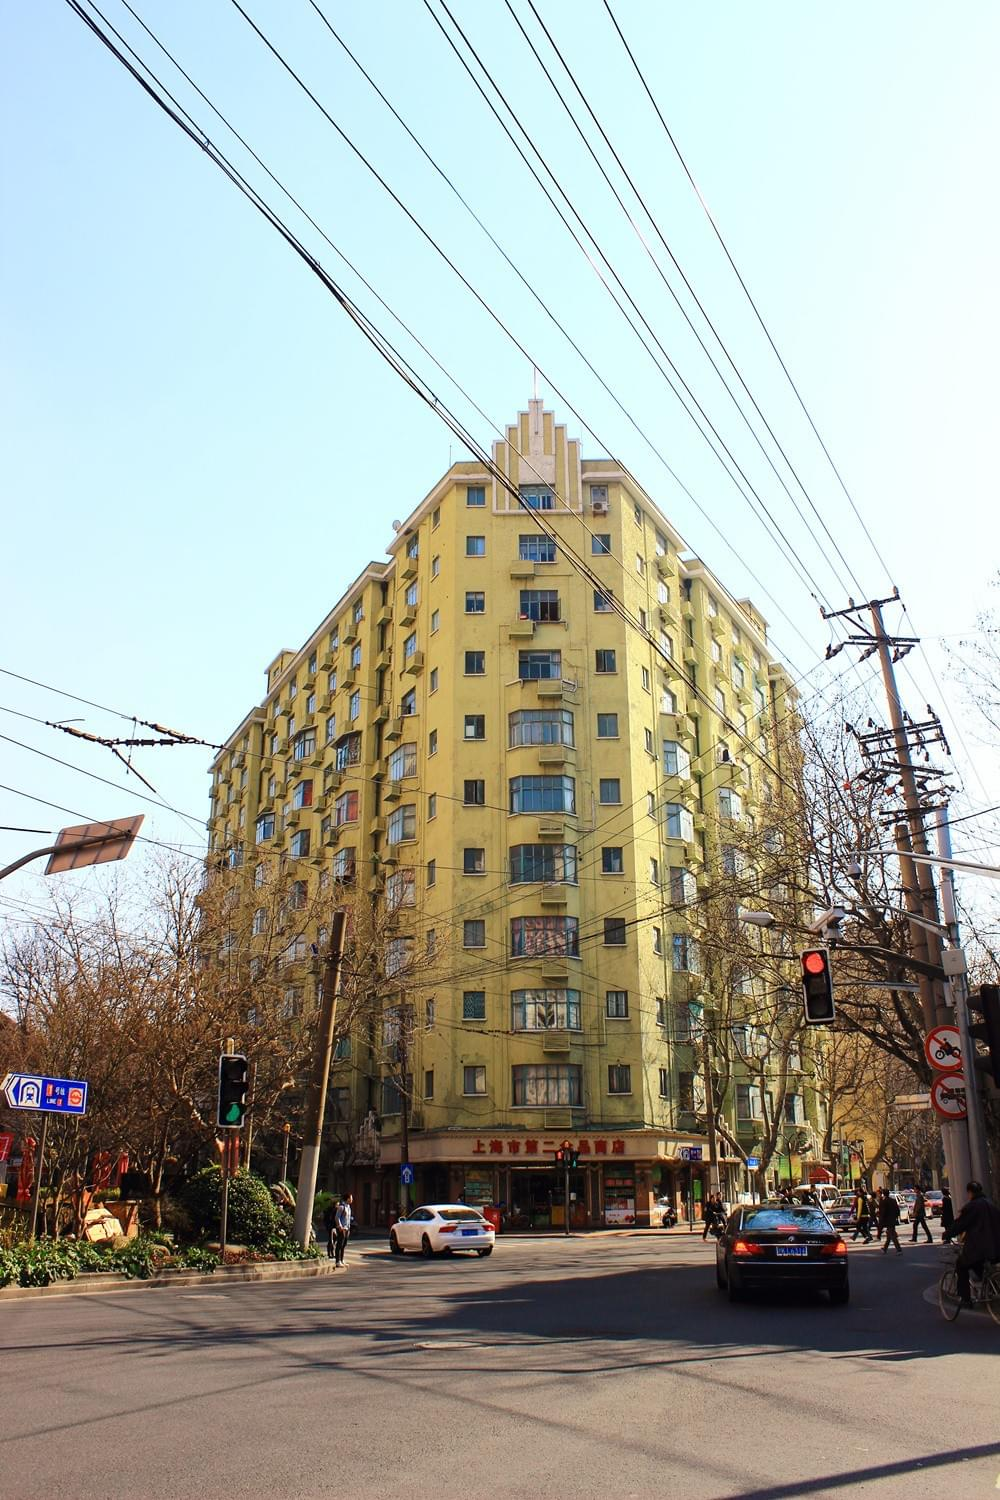 Picture source:commons.wikimedia.org; The Washington Apartments in 301-305 Hengshan Road